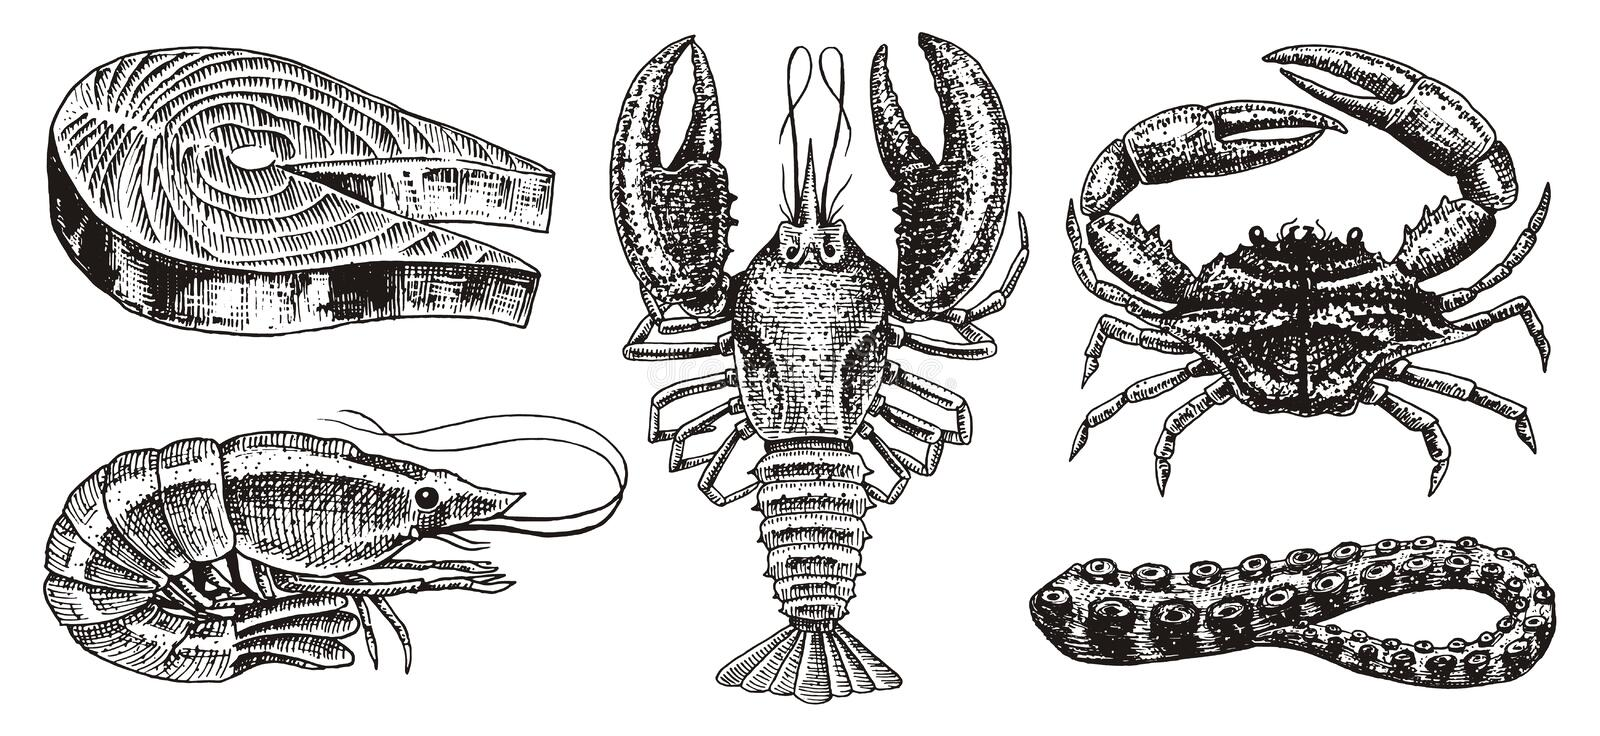 Crustaceans, shrimp, lobster or crayfish, salmon steak, crab with claws. River and lake or sea creatures. Freshwater royalty free illustration